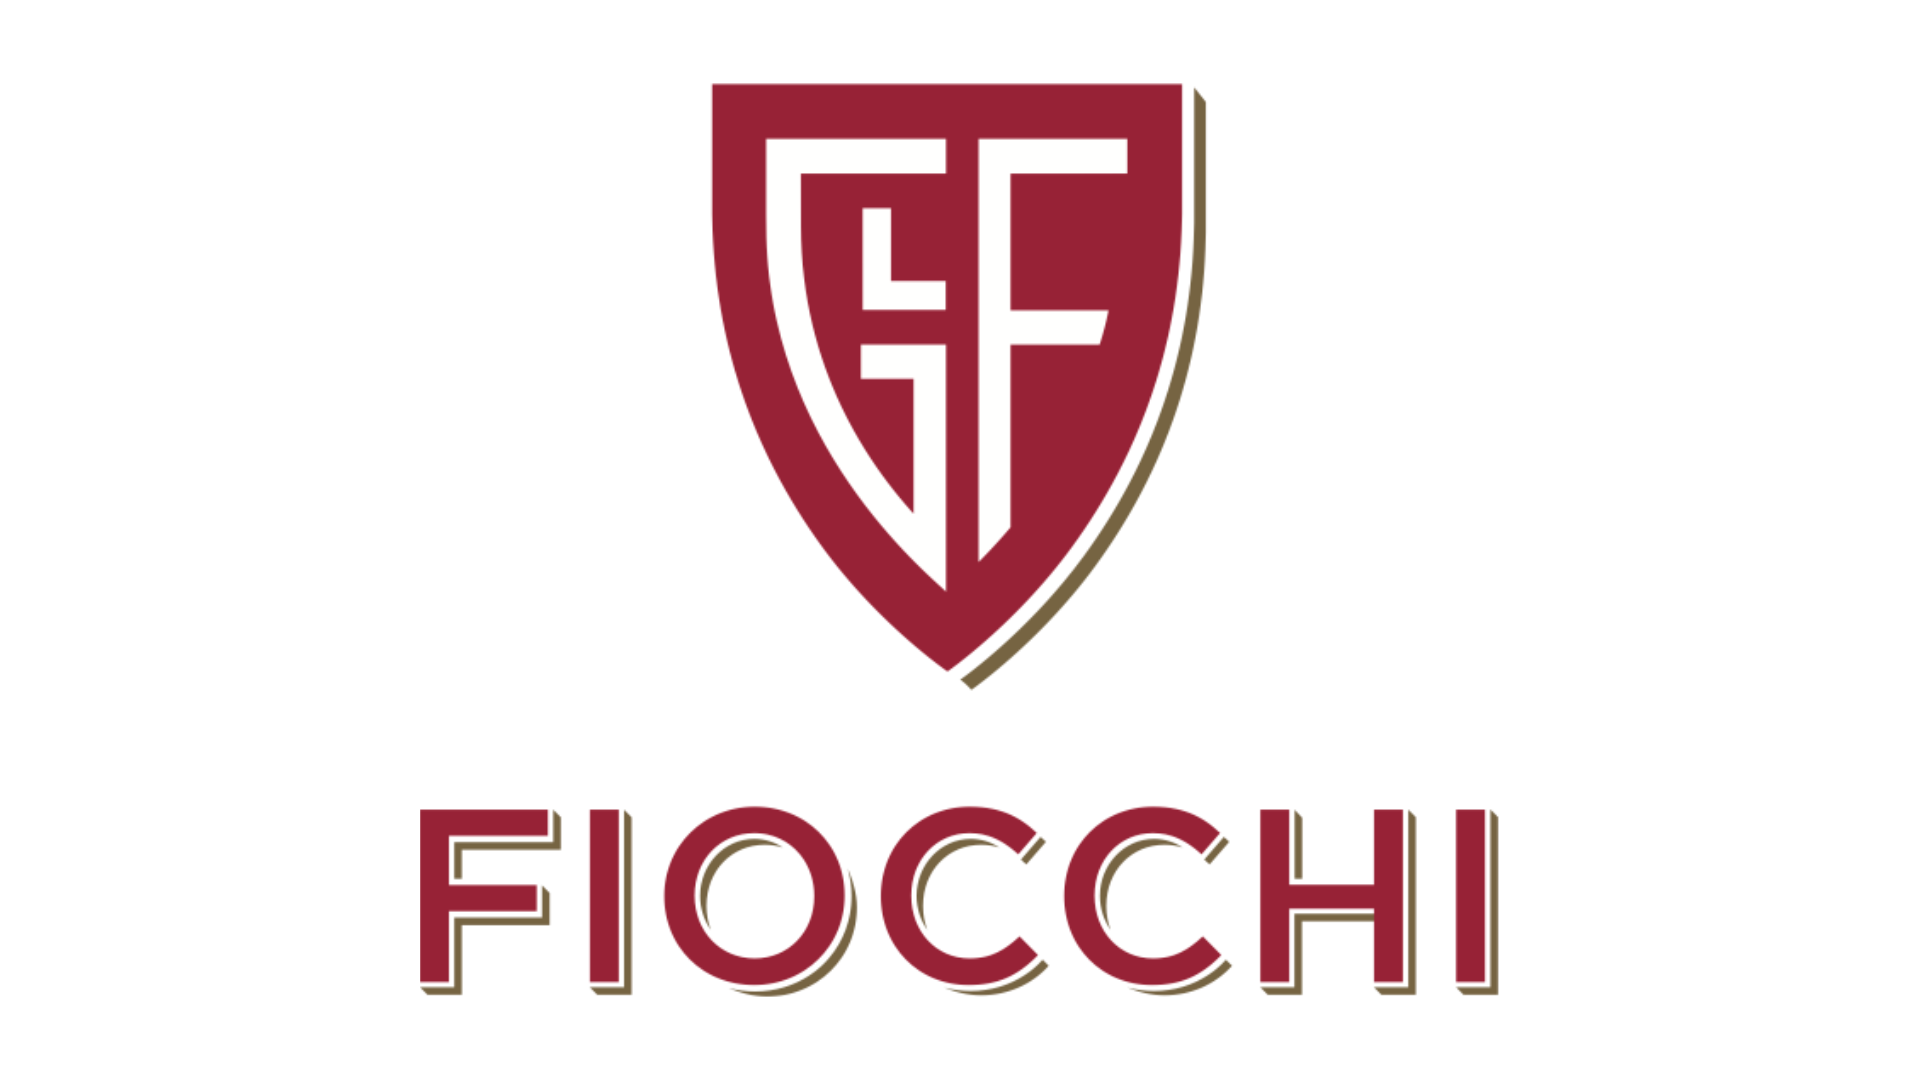 FIOCCHI ANNOUNCES THE ACQUISITION OF BASCHIERI & PELLAGRI